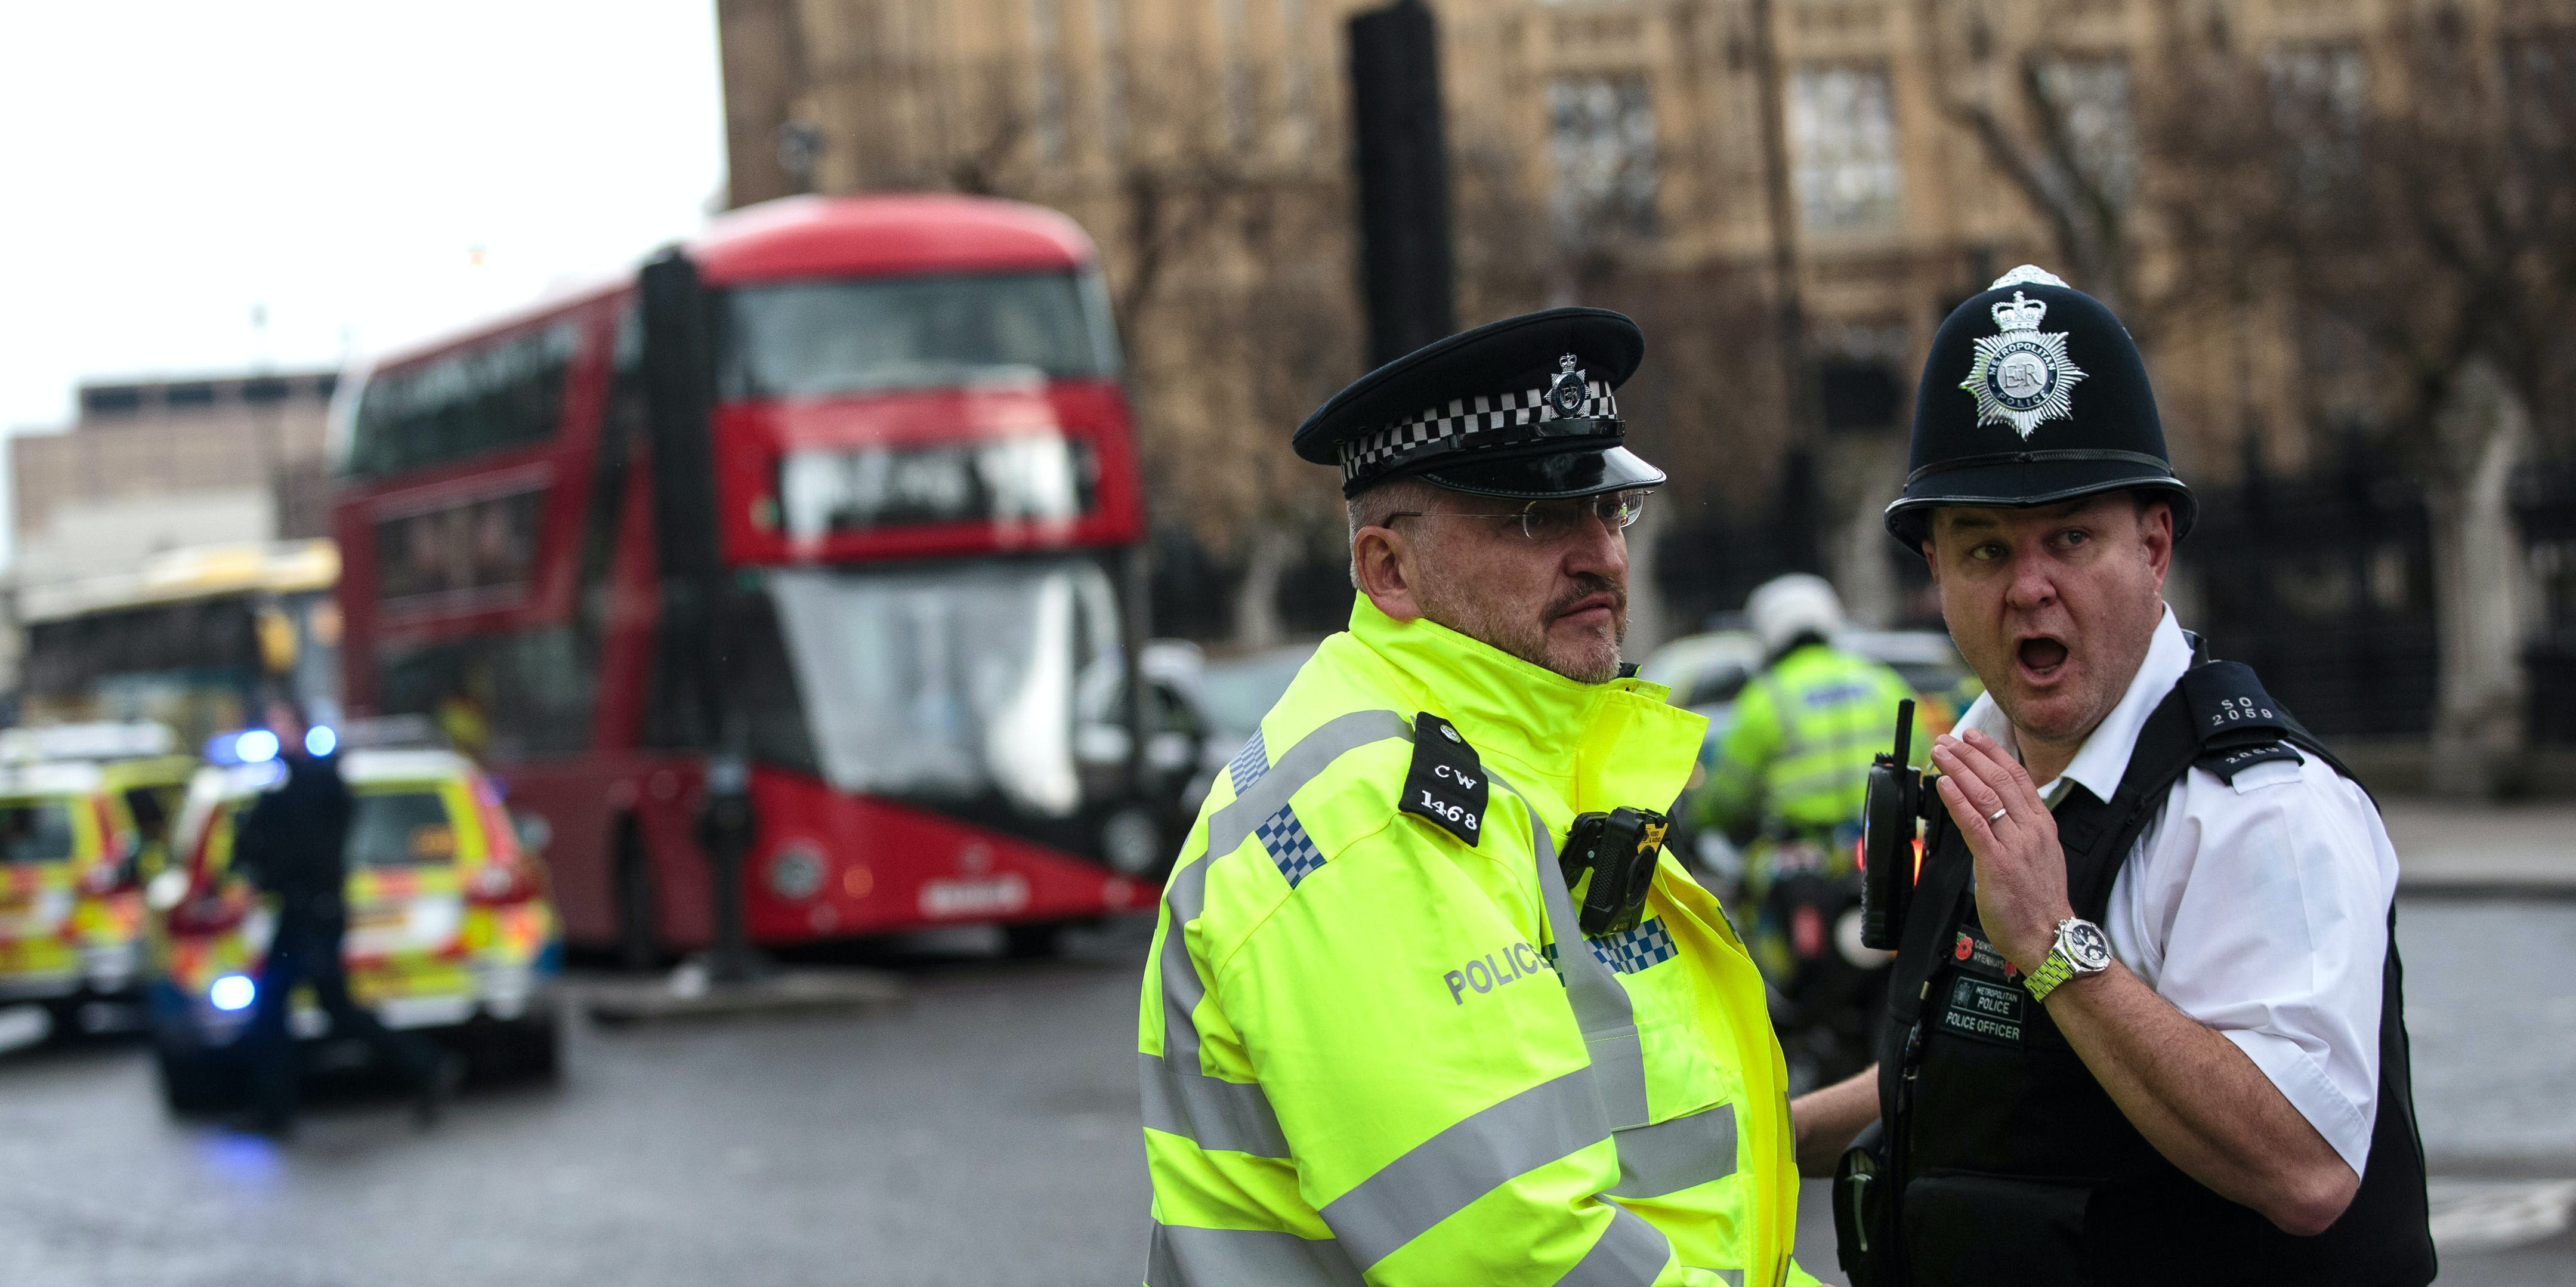 The introduction of autonomous vehicles could help stop terrorist truck attacks like the one in London on Wednesday.